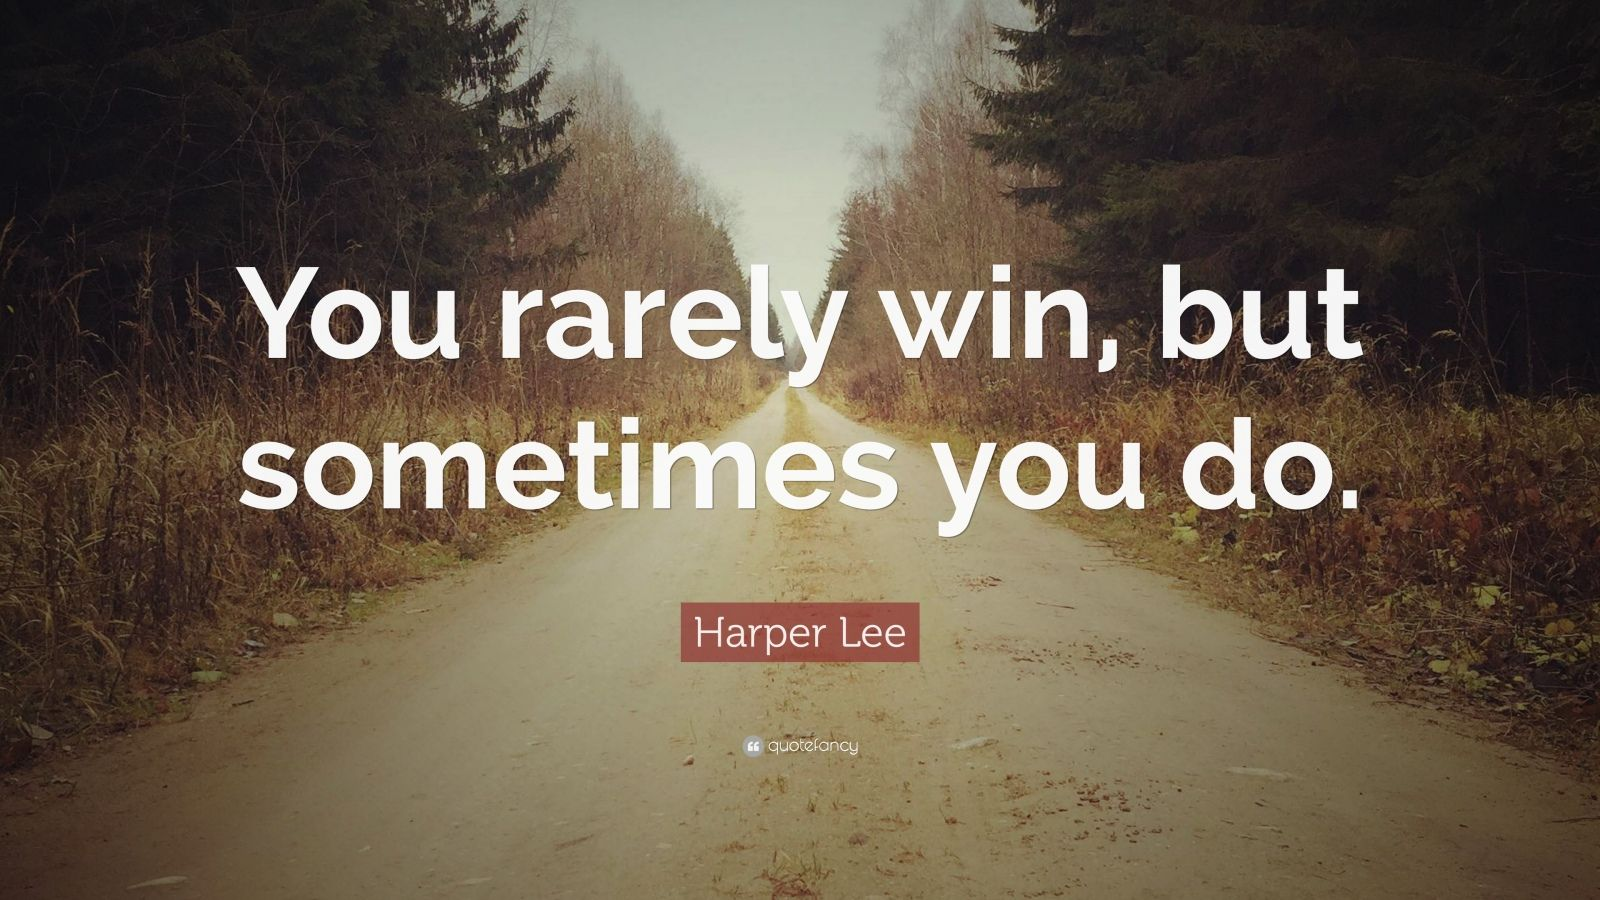 themes and issues of harper lees Harper lee harper lee was born on april 28, 1926 in monroeville, alabama she is best known for her 1961 pulitzer-prize-winning novel to kill a mockingbird.